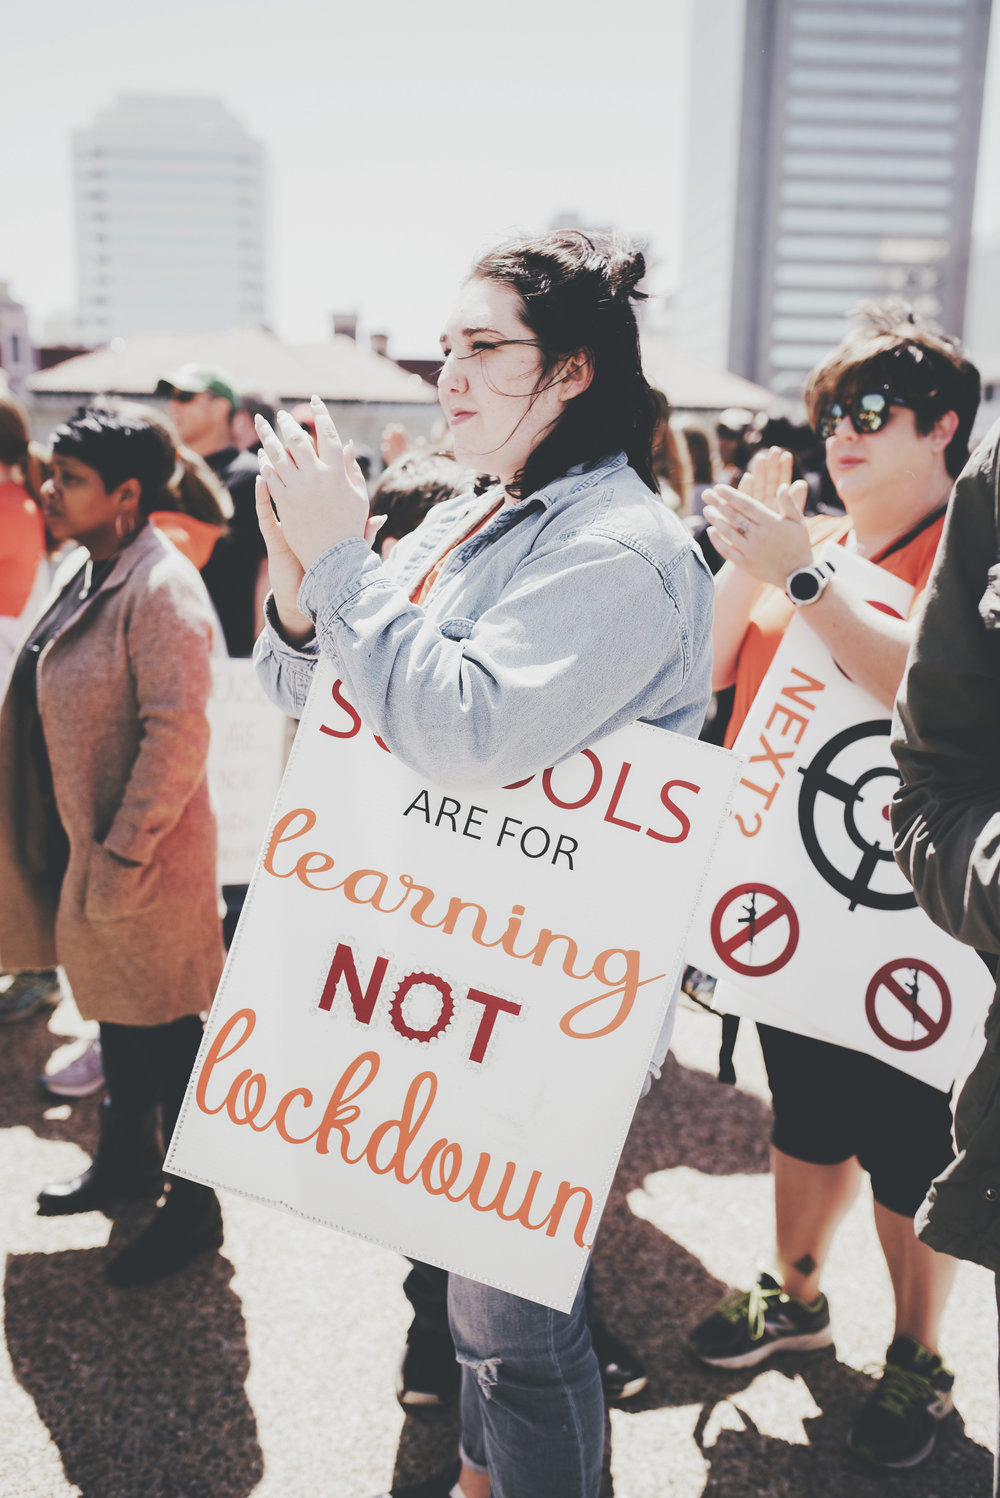 National School Walkout: Virginia Student Rally Against Gun Violence - The Student March From Brown's Island to the VA State Capitol